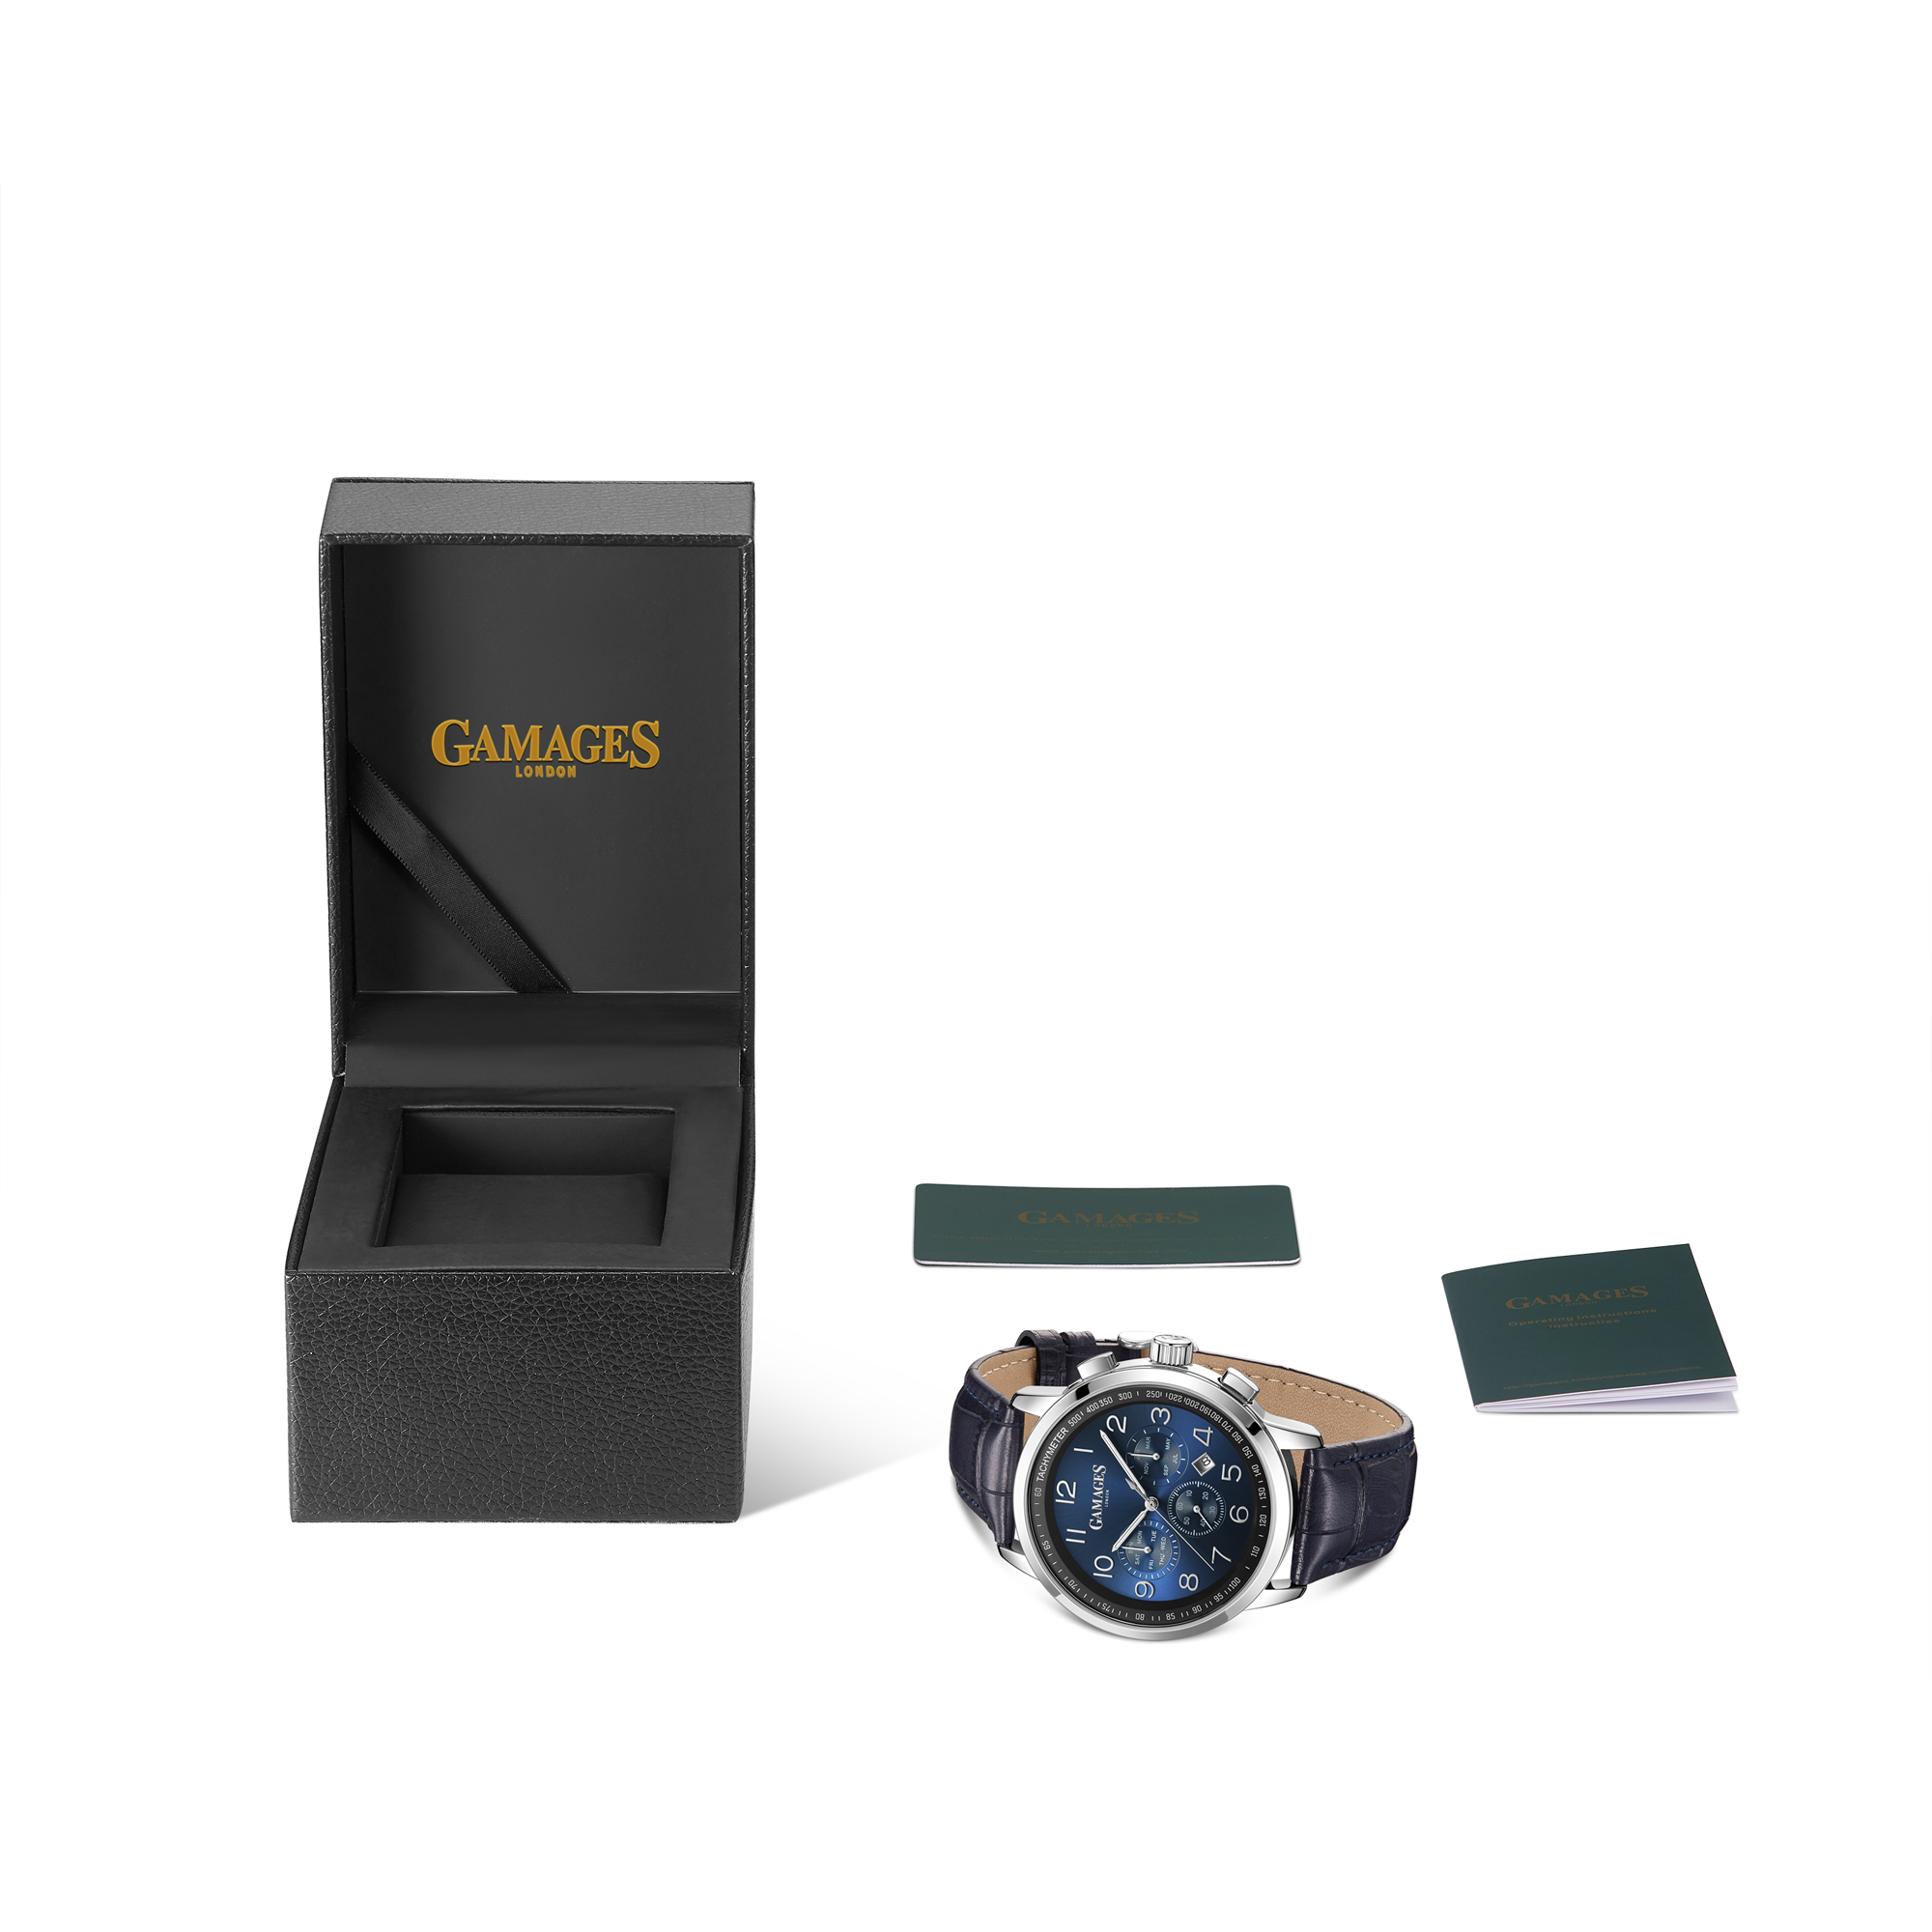 Ltd Edition Hand Assembled Gamages Classique Automatic Midnight Blue – 5 Yr Warranty & Free Delivery - Image 2 of 4